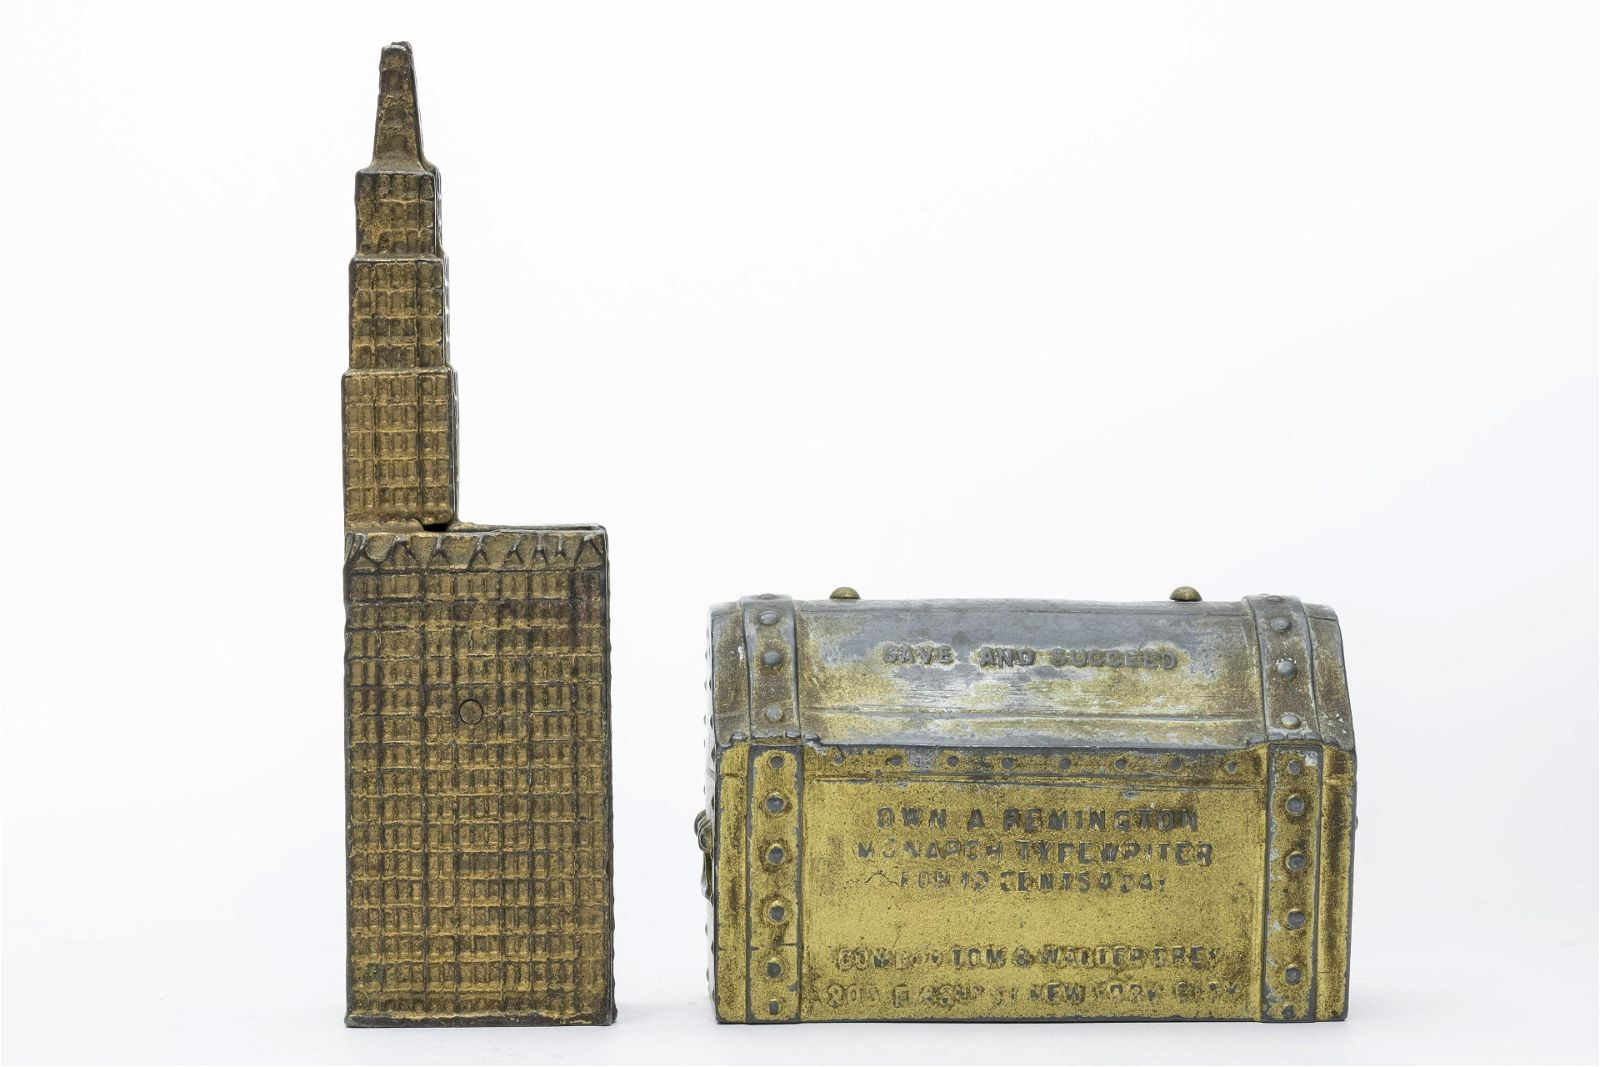 Treasure Chest & Woolworth Building Banks